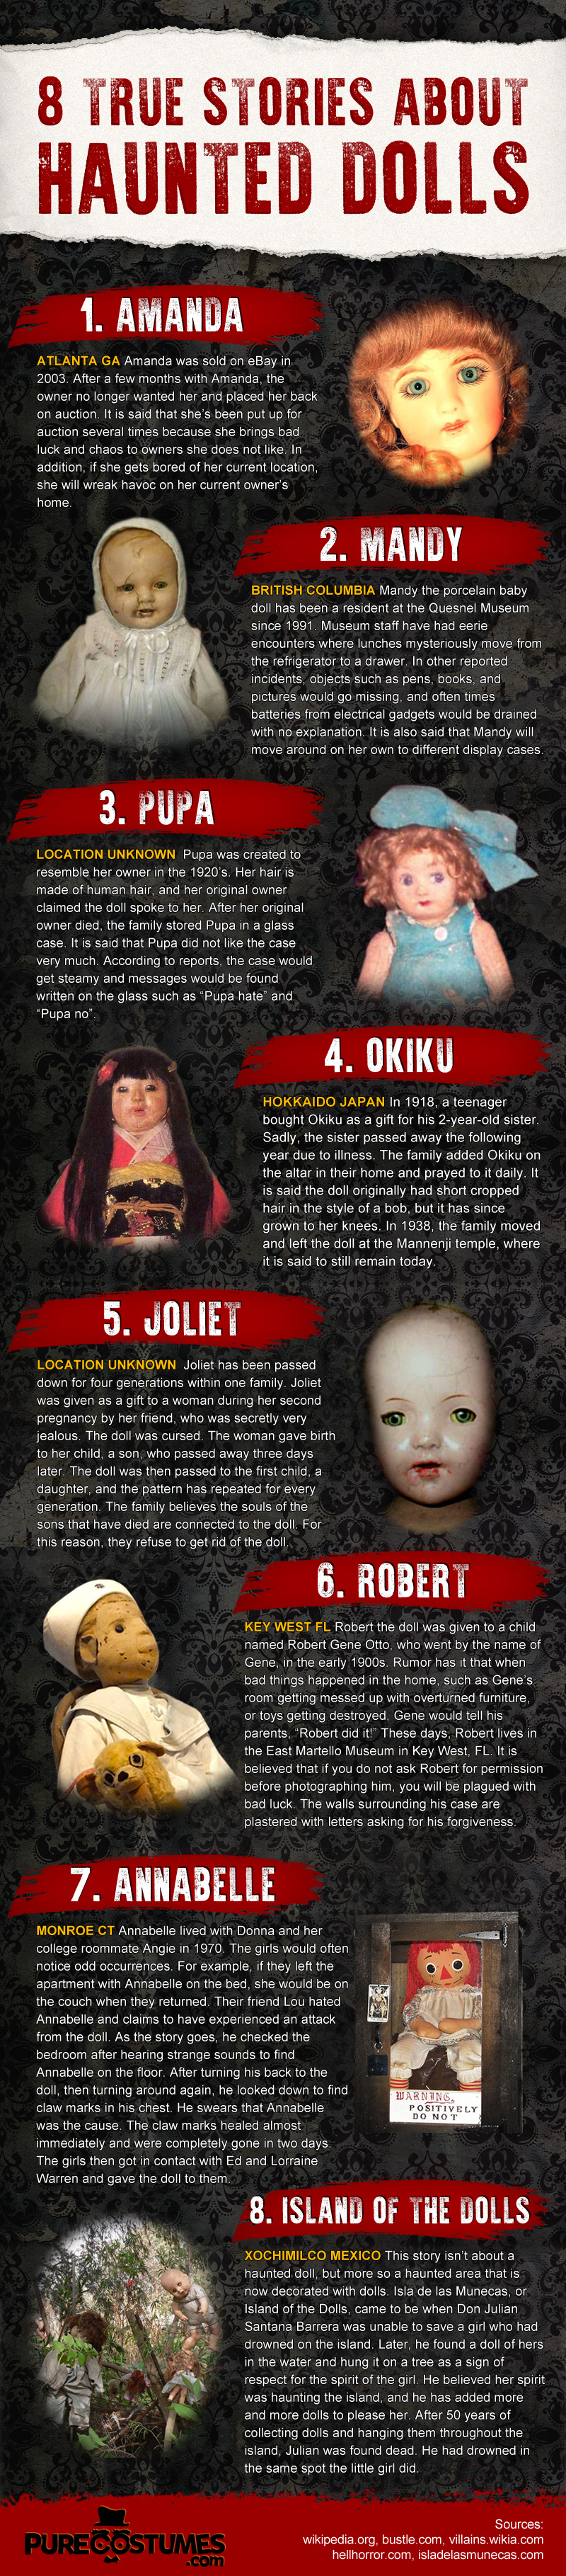 8 True Stories About Haunted Dolls